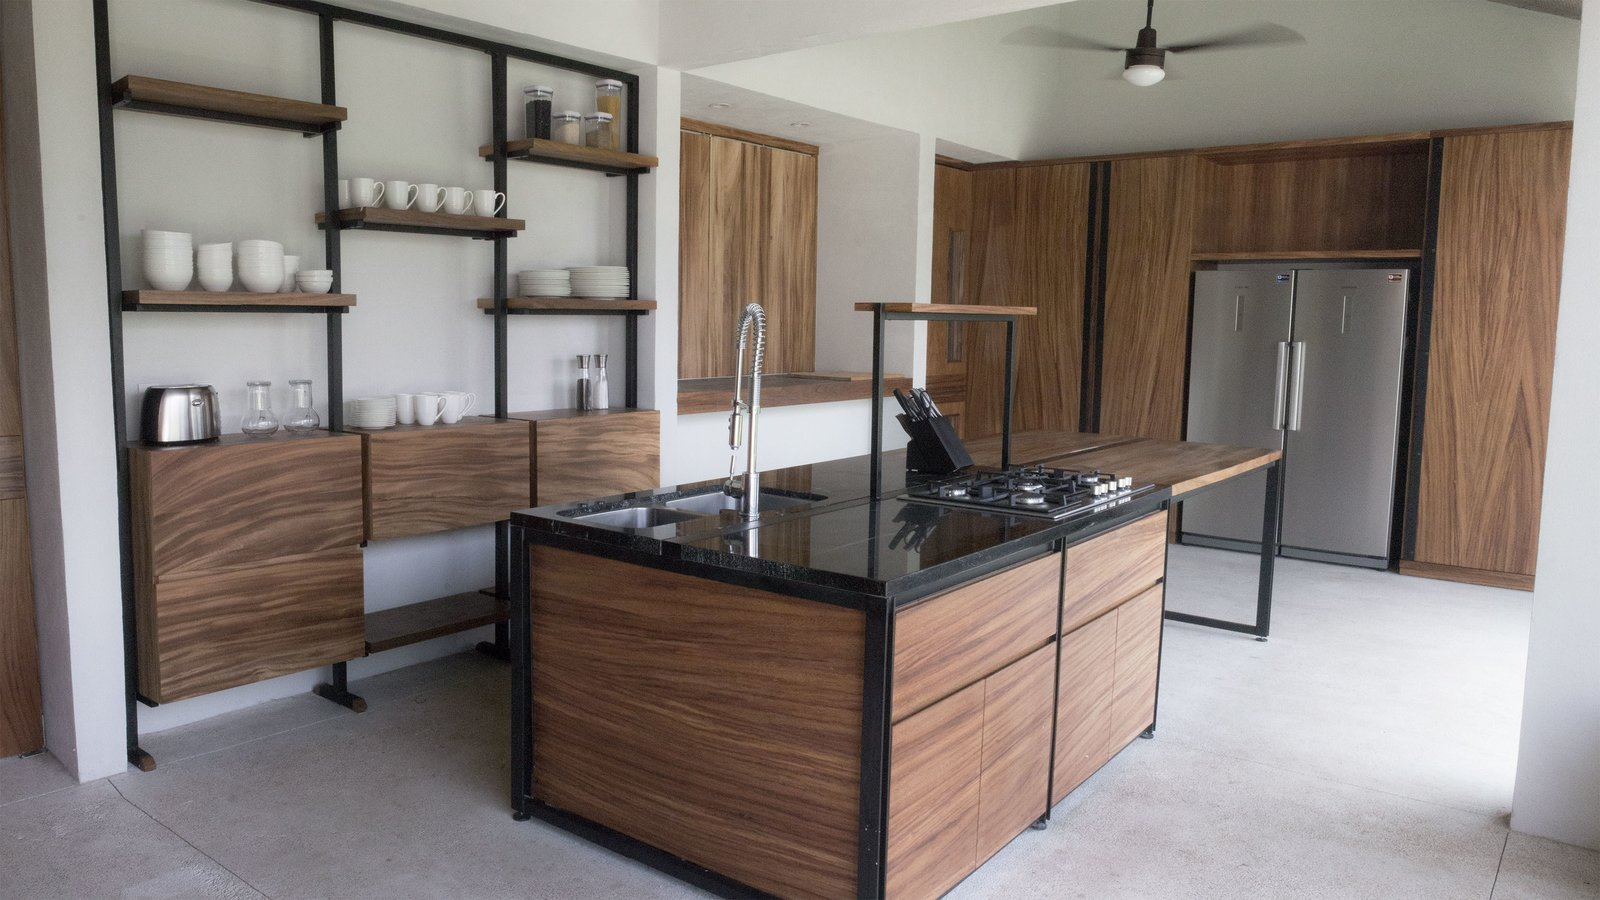 Tagged: Kitchen, Granite Counter, Wood Counter, Metal Counter, Metal Cabinet, Refrigerator, Wood Cabinet, Concrete Floor, Microwave, Dishwasher, and Wall Oven.  Casa Paraíso by DCPP by LCMX